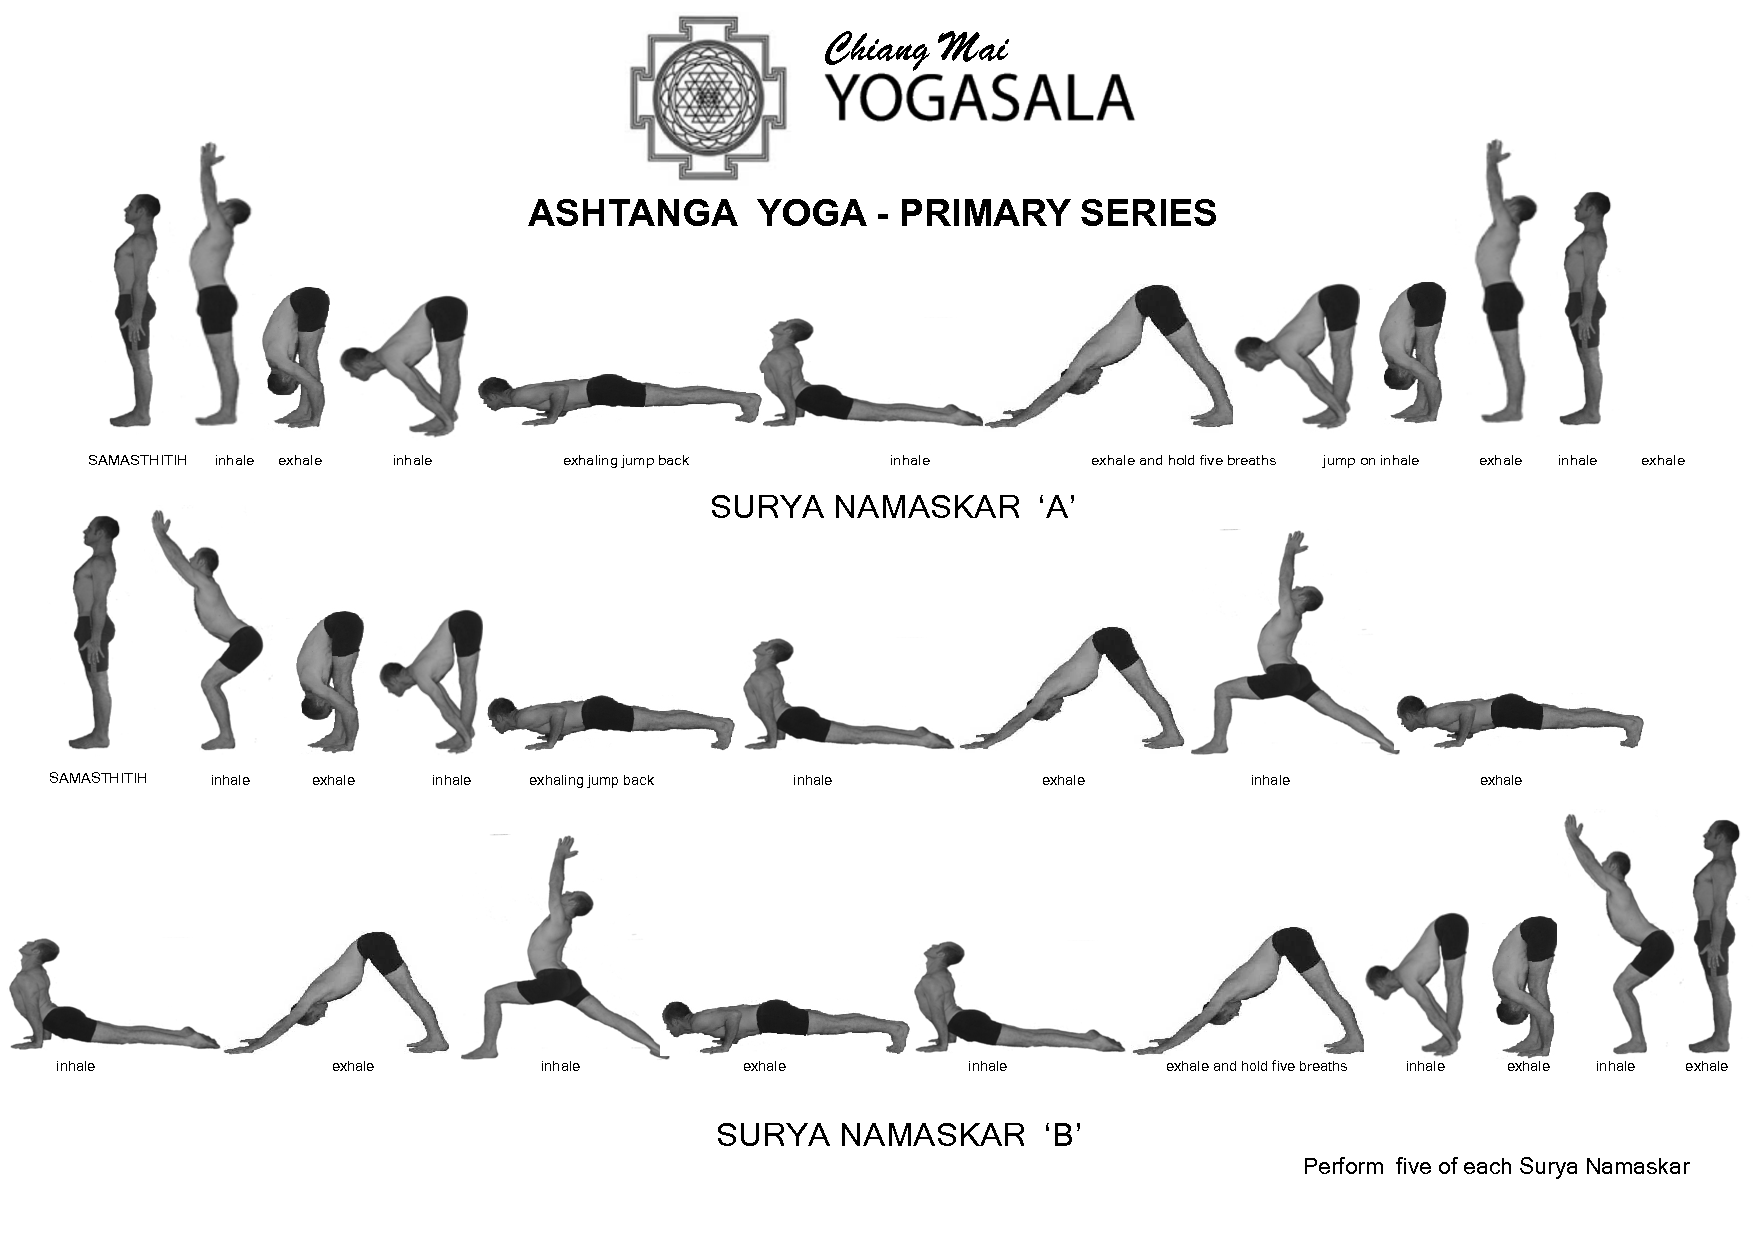 Ashtanga Yoga Sequence For Beginners | Workout Krtsy